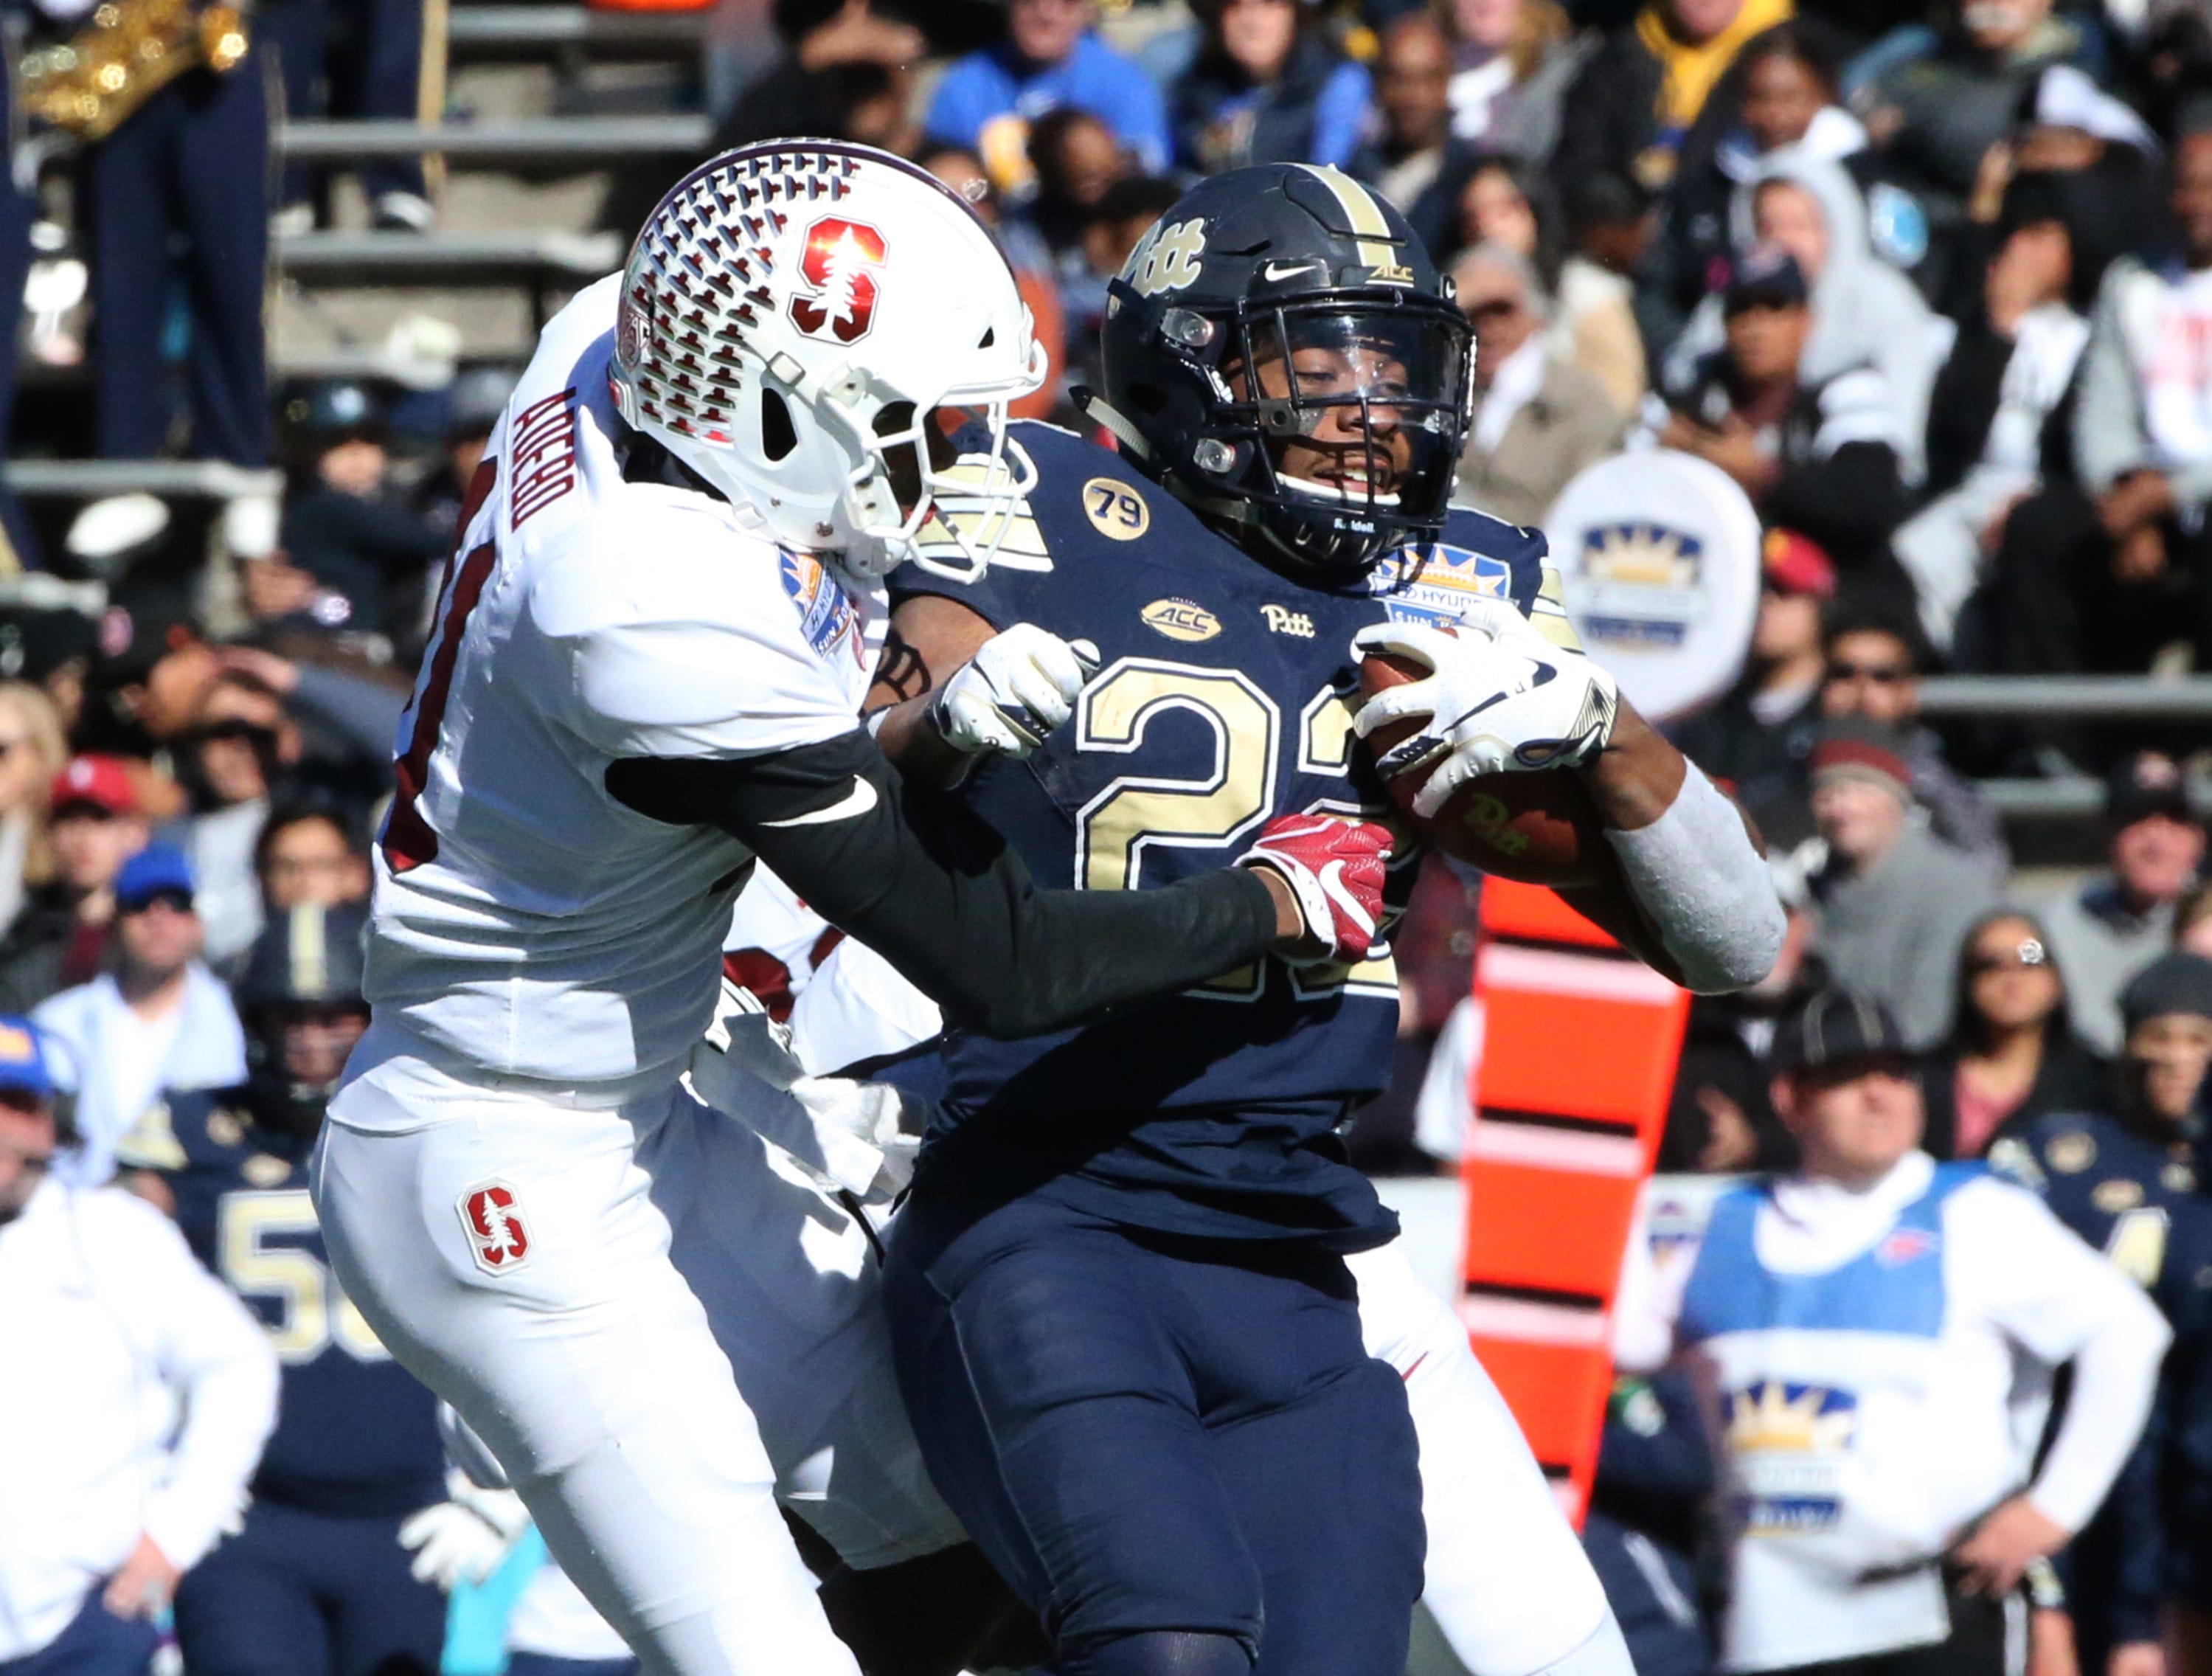 Pitt tail back Darrin Hall, 22, scampers downfield against Stanford in the 85th Hyundai Sun Bowl game Monday, Dec. 31 in El Paso, TX.